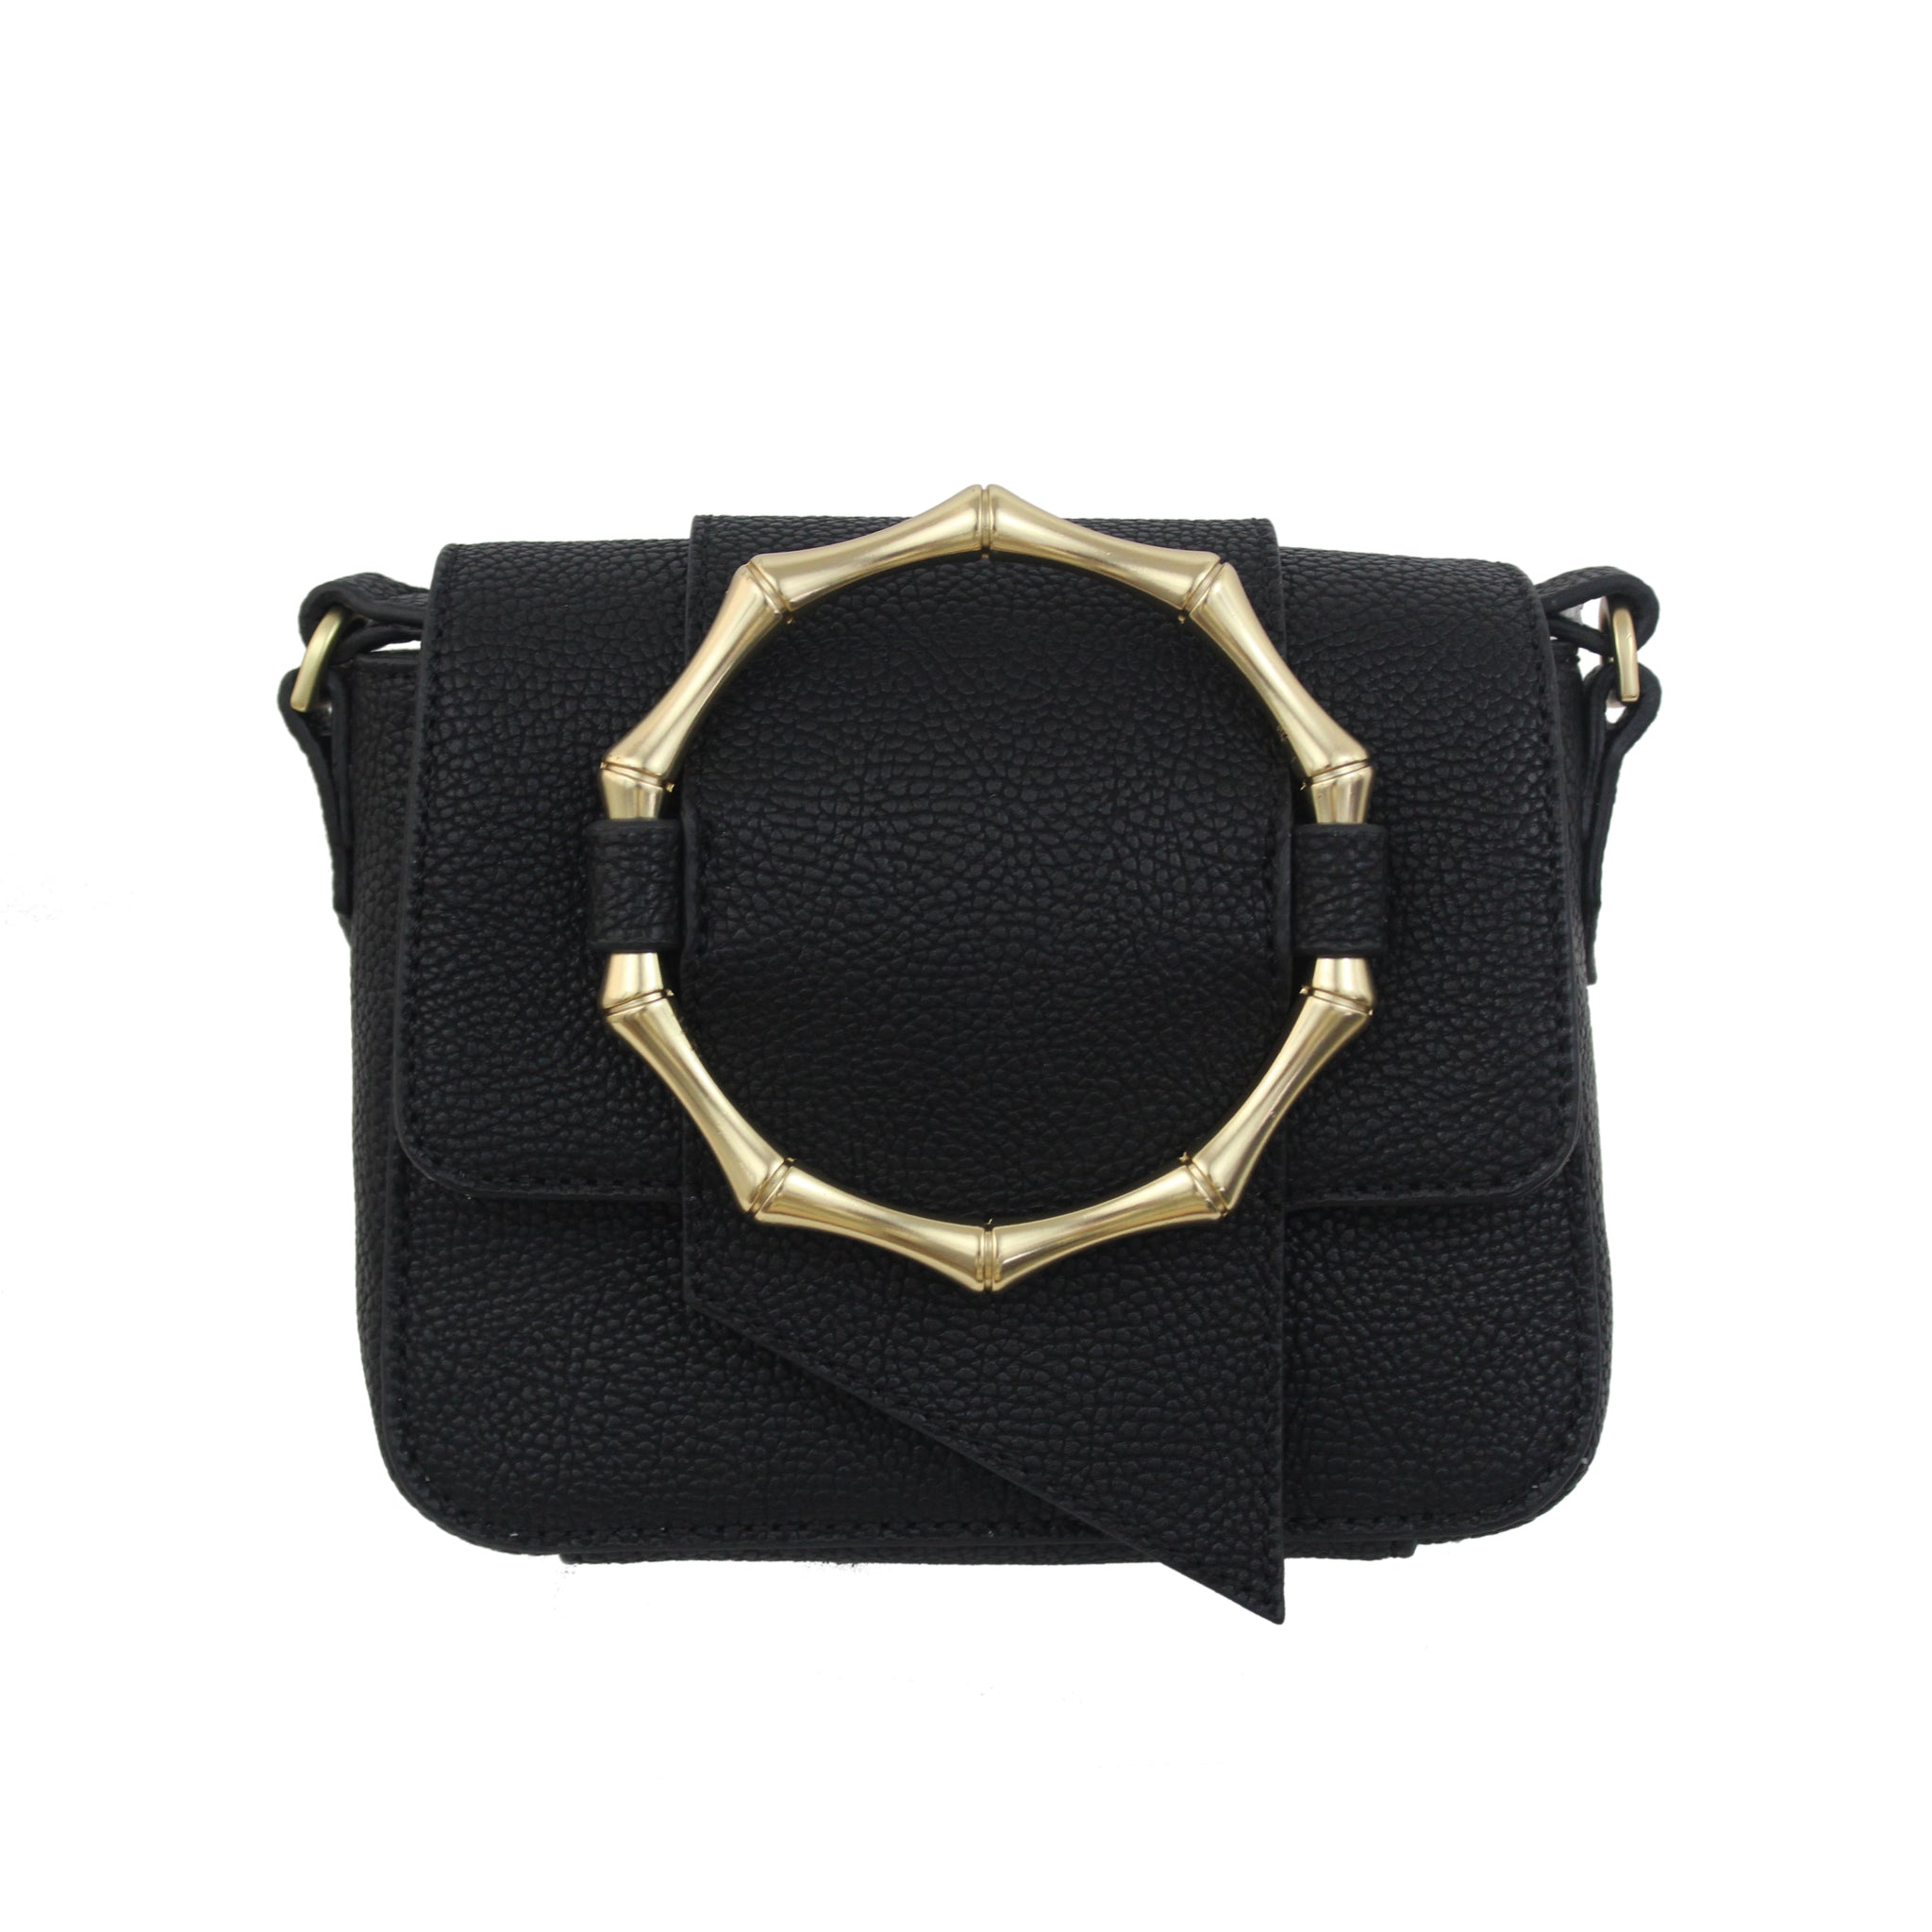 a9efafa35f Crossbody   Shoulder Bags - Foley + Corinna